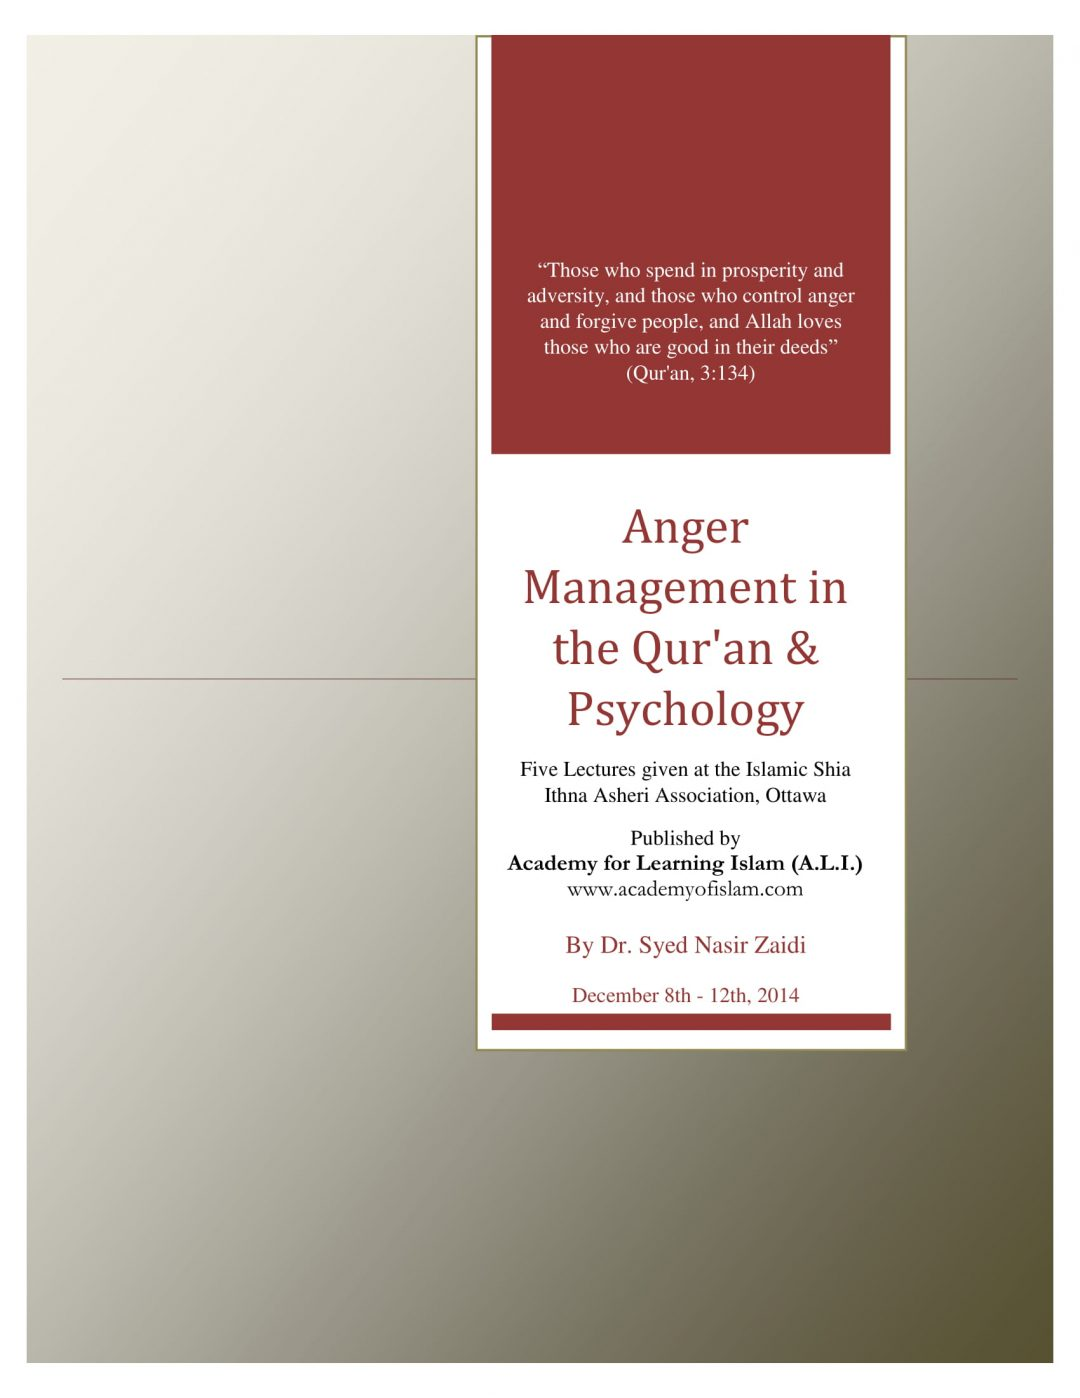 Anger Management in the Quran and Psychology